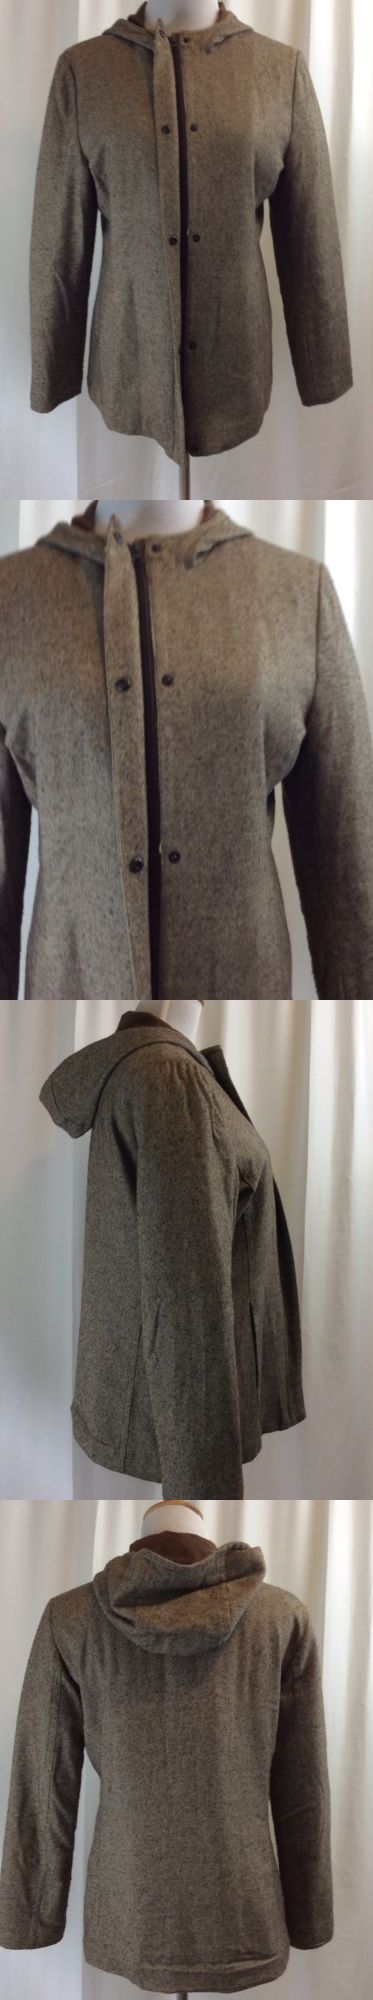 Women Coats And Jackets: Gap Womens Brown Hooded Zip And Snap Front Coat Jacket Size M -> BUY IT NOW ONLY: $11.55 on eBay!